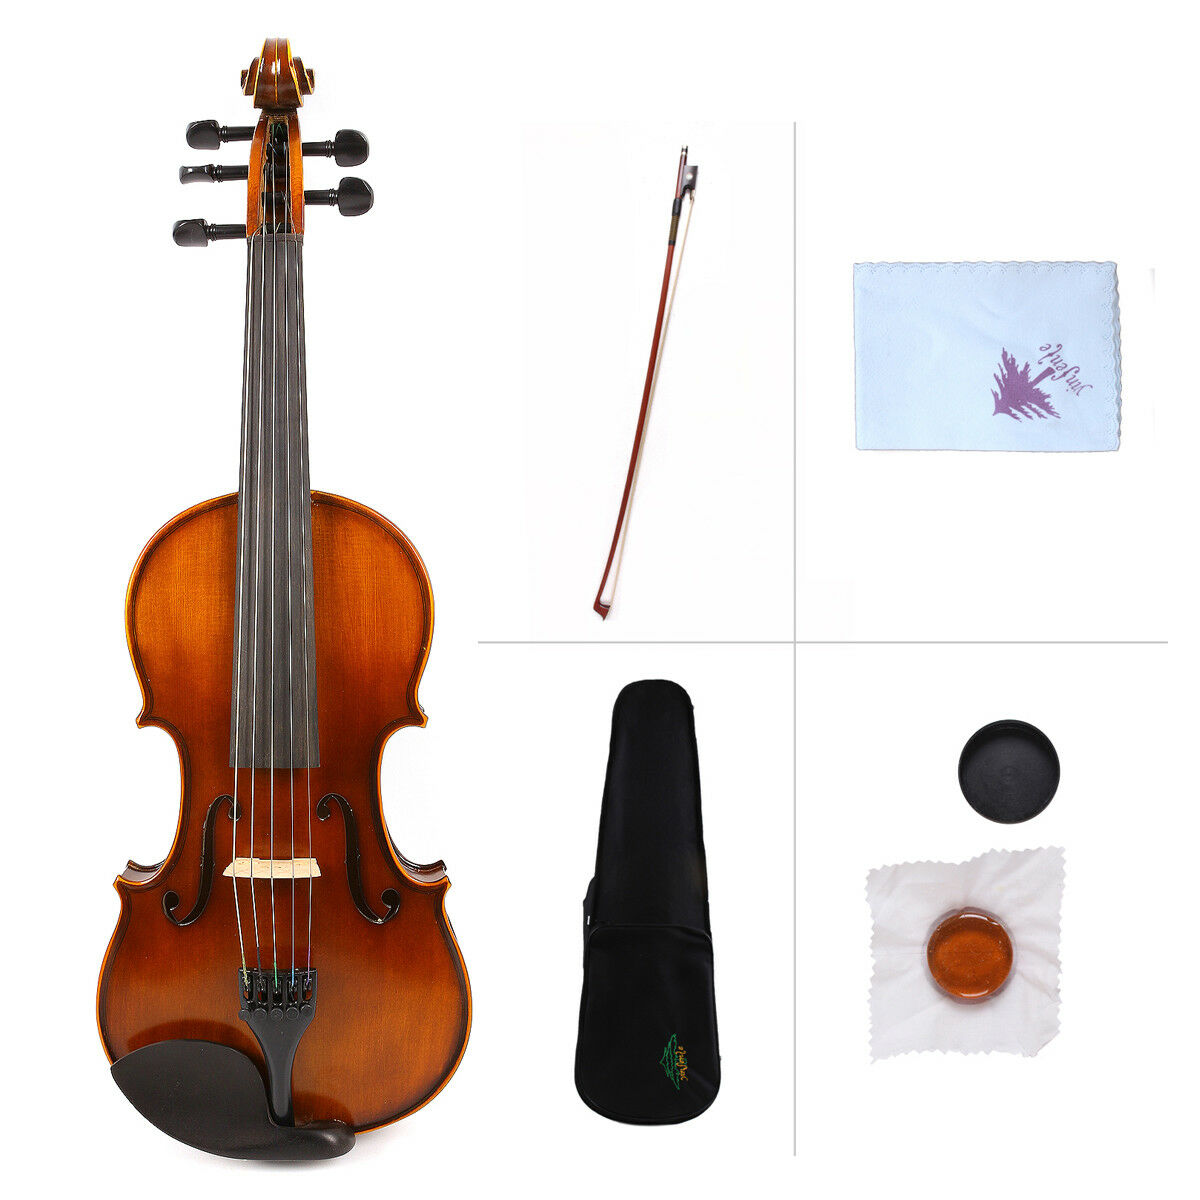 Yinfente 5string Maple+Spruce Handmade Violin 4 4 Full Size Free Case Bow Rosin